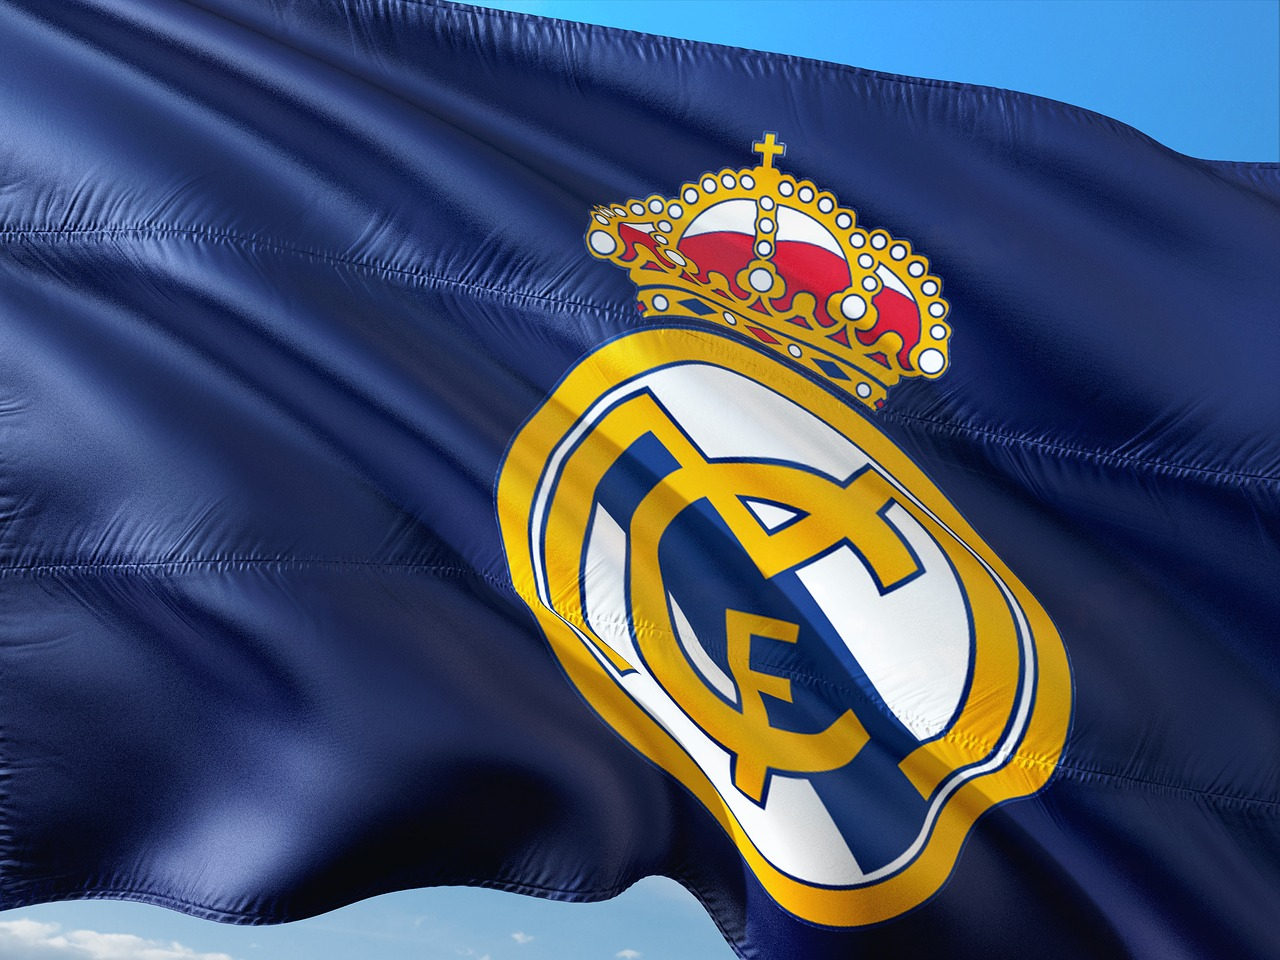 Real Madrid - Europe's most successful club